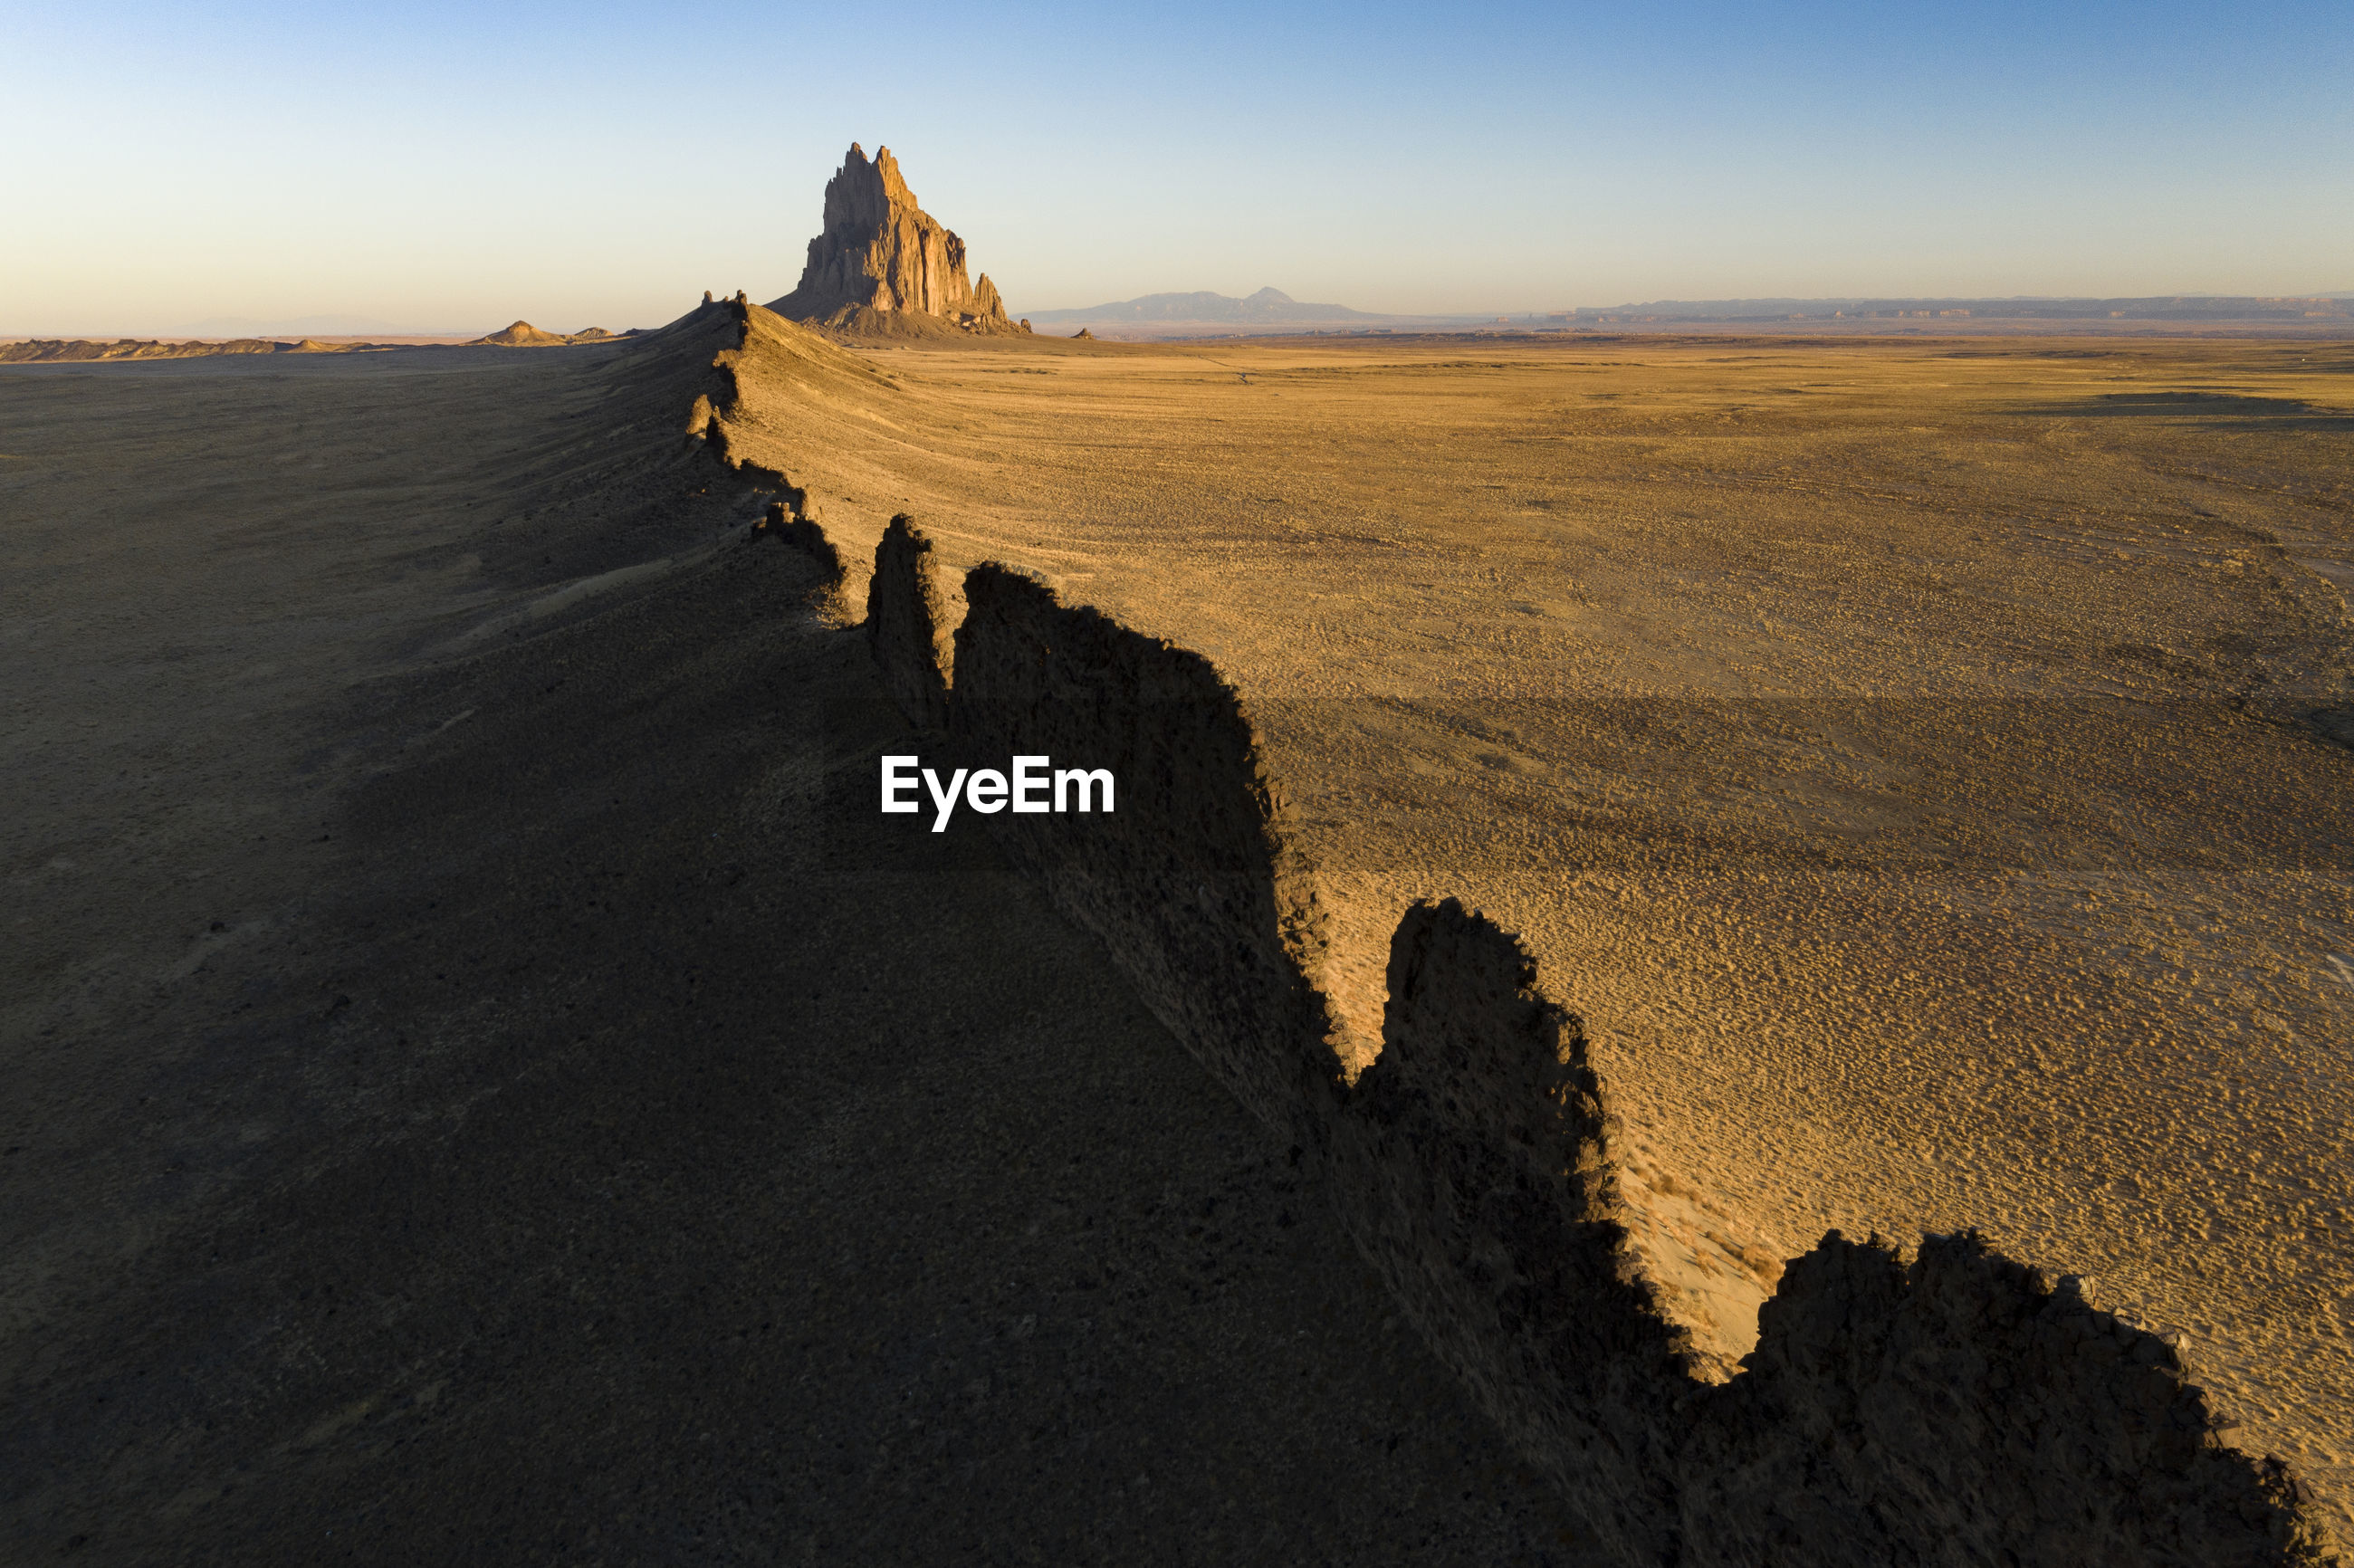 PANORAMIC VIEW OF DESERT LAND AGAINST SKY